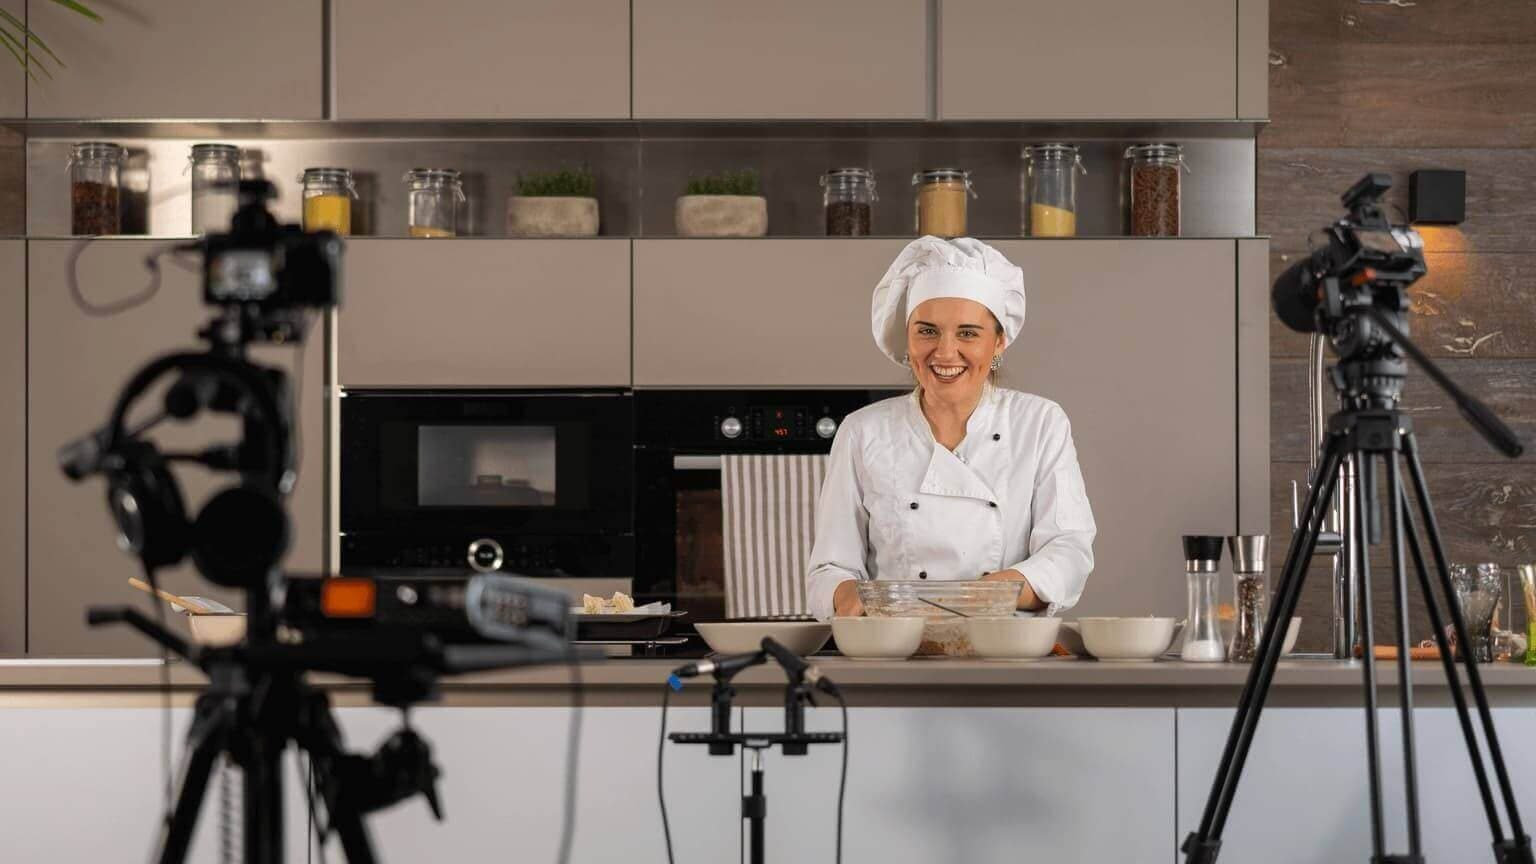 female chef smiling on kitchen studio set